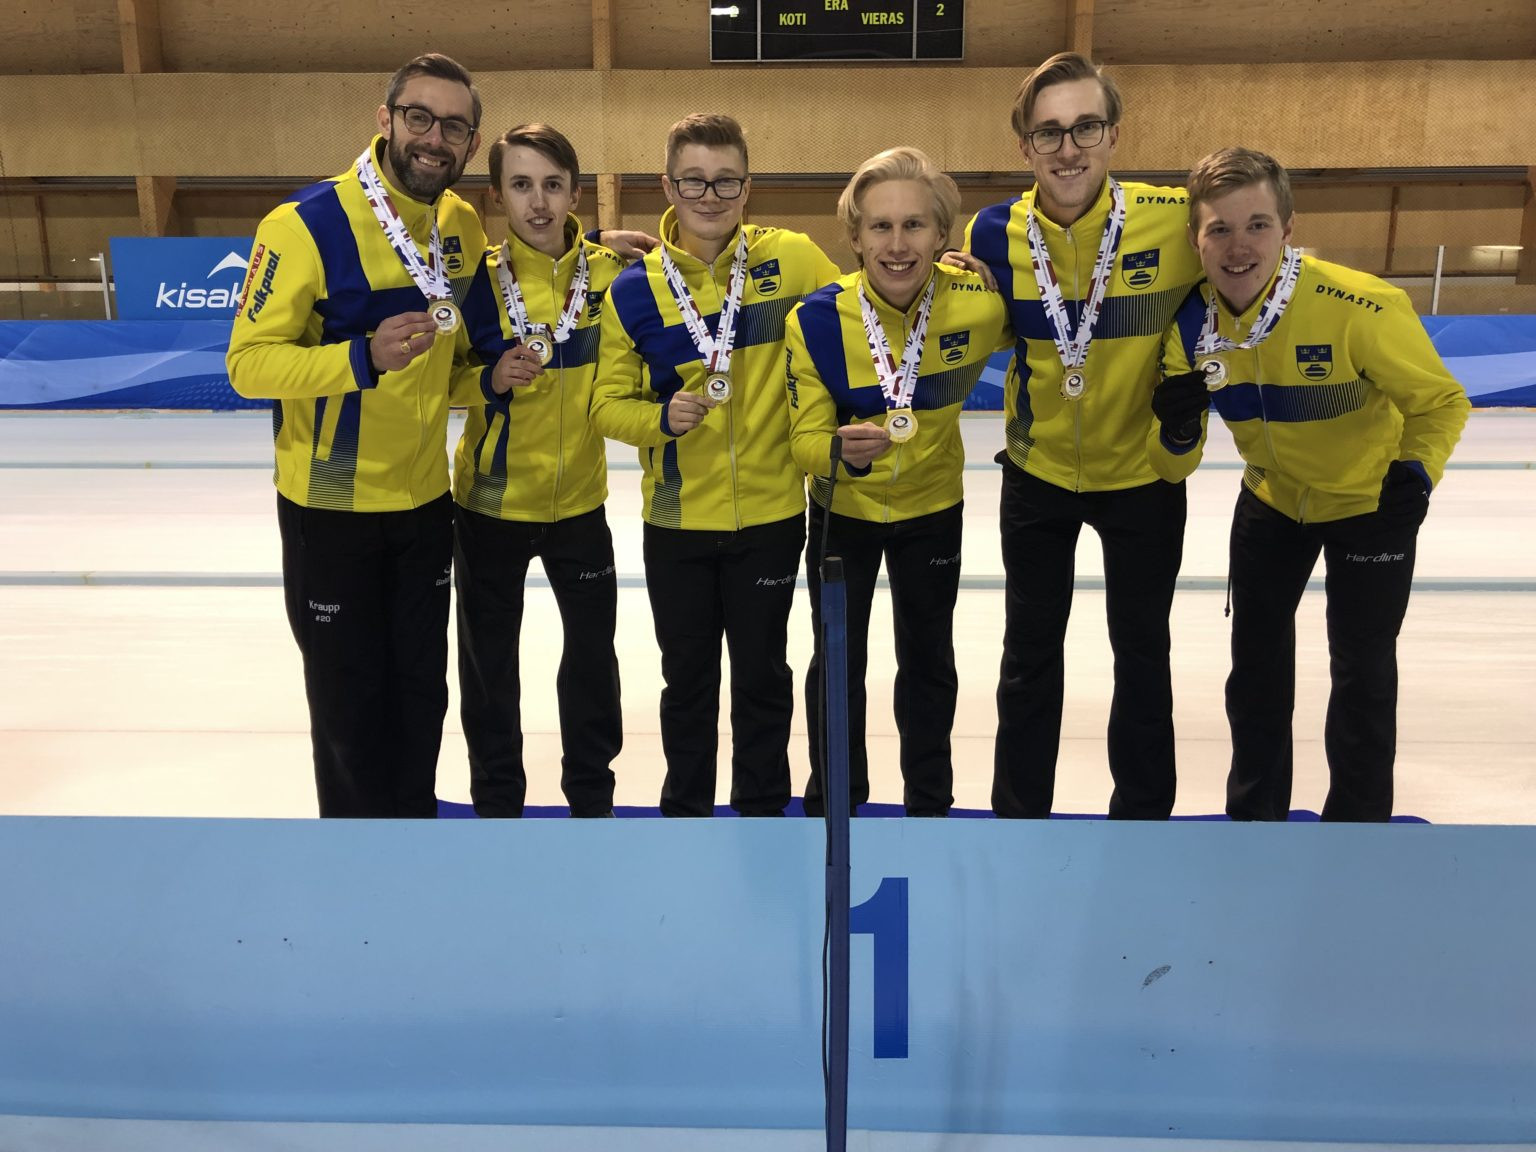 Sweden came out on top in the men's event ©Kisakallio/WCF